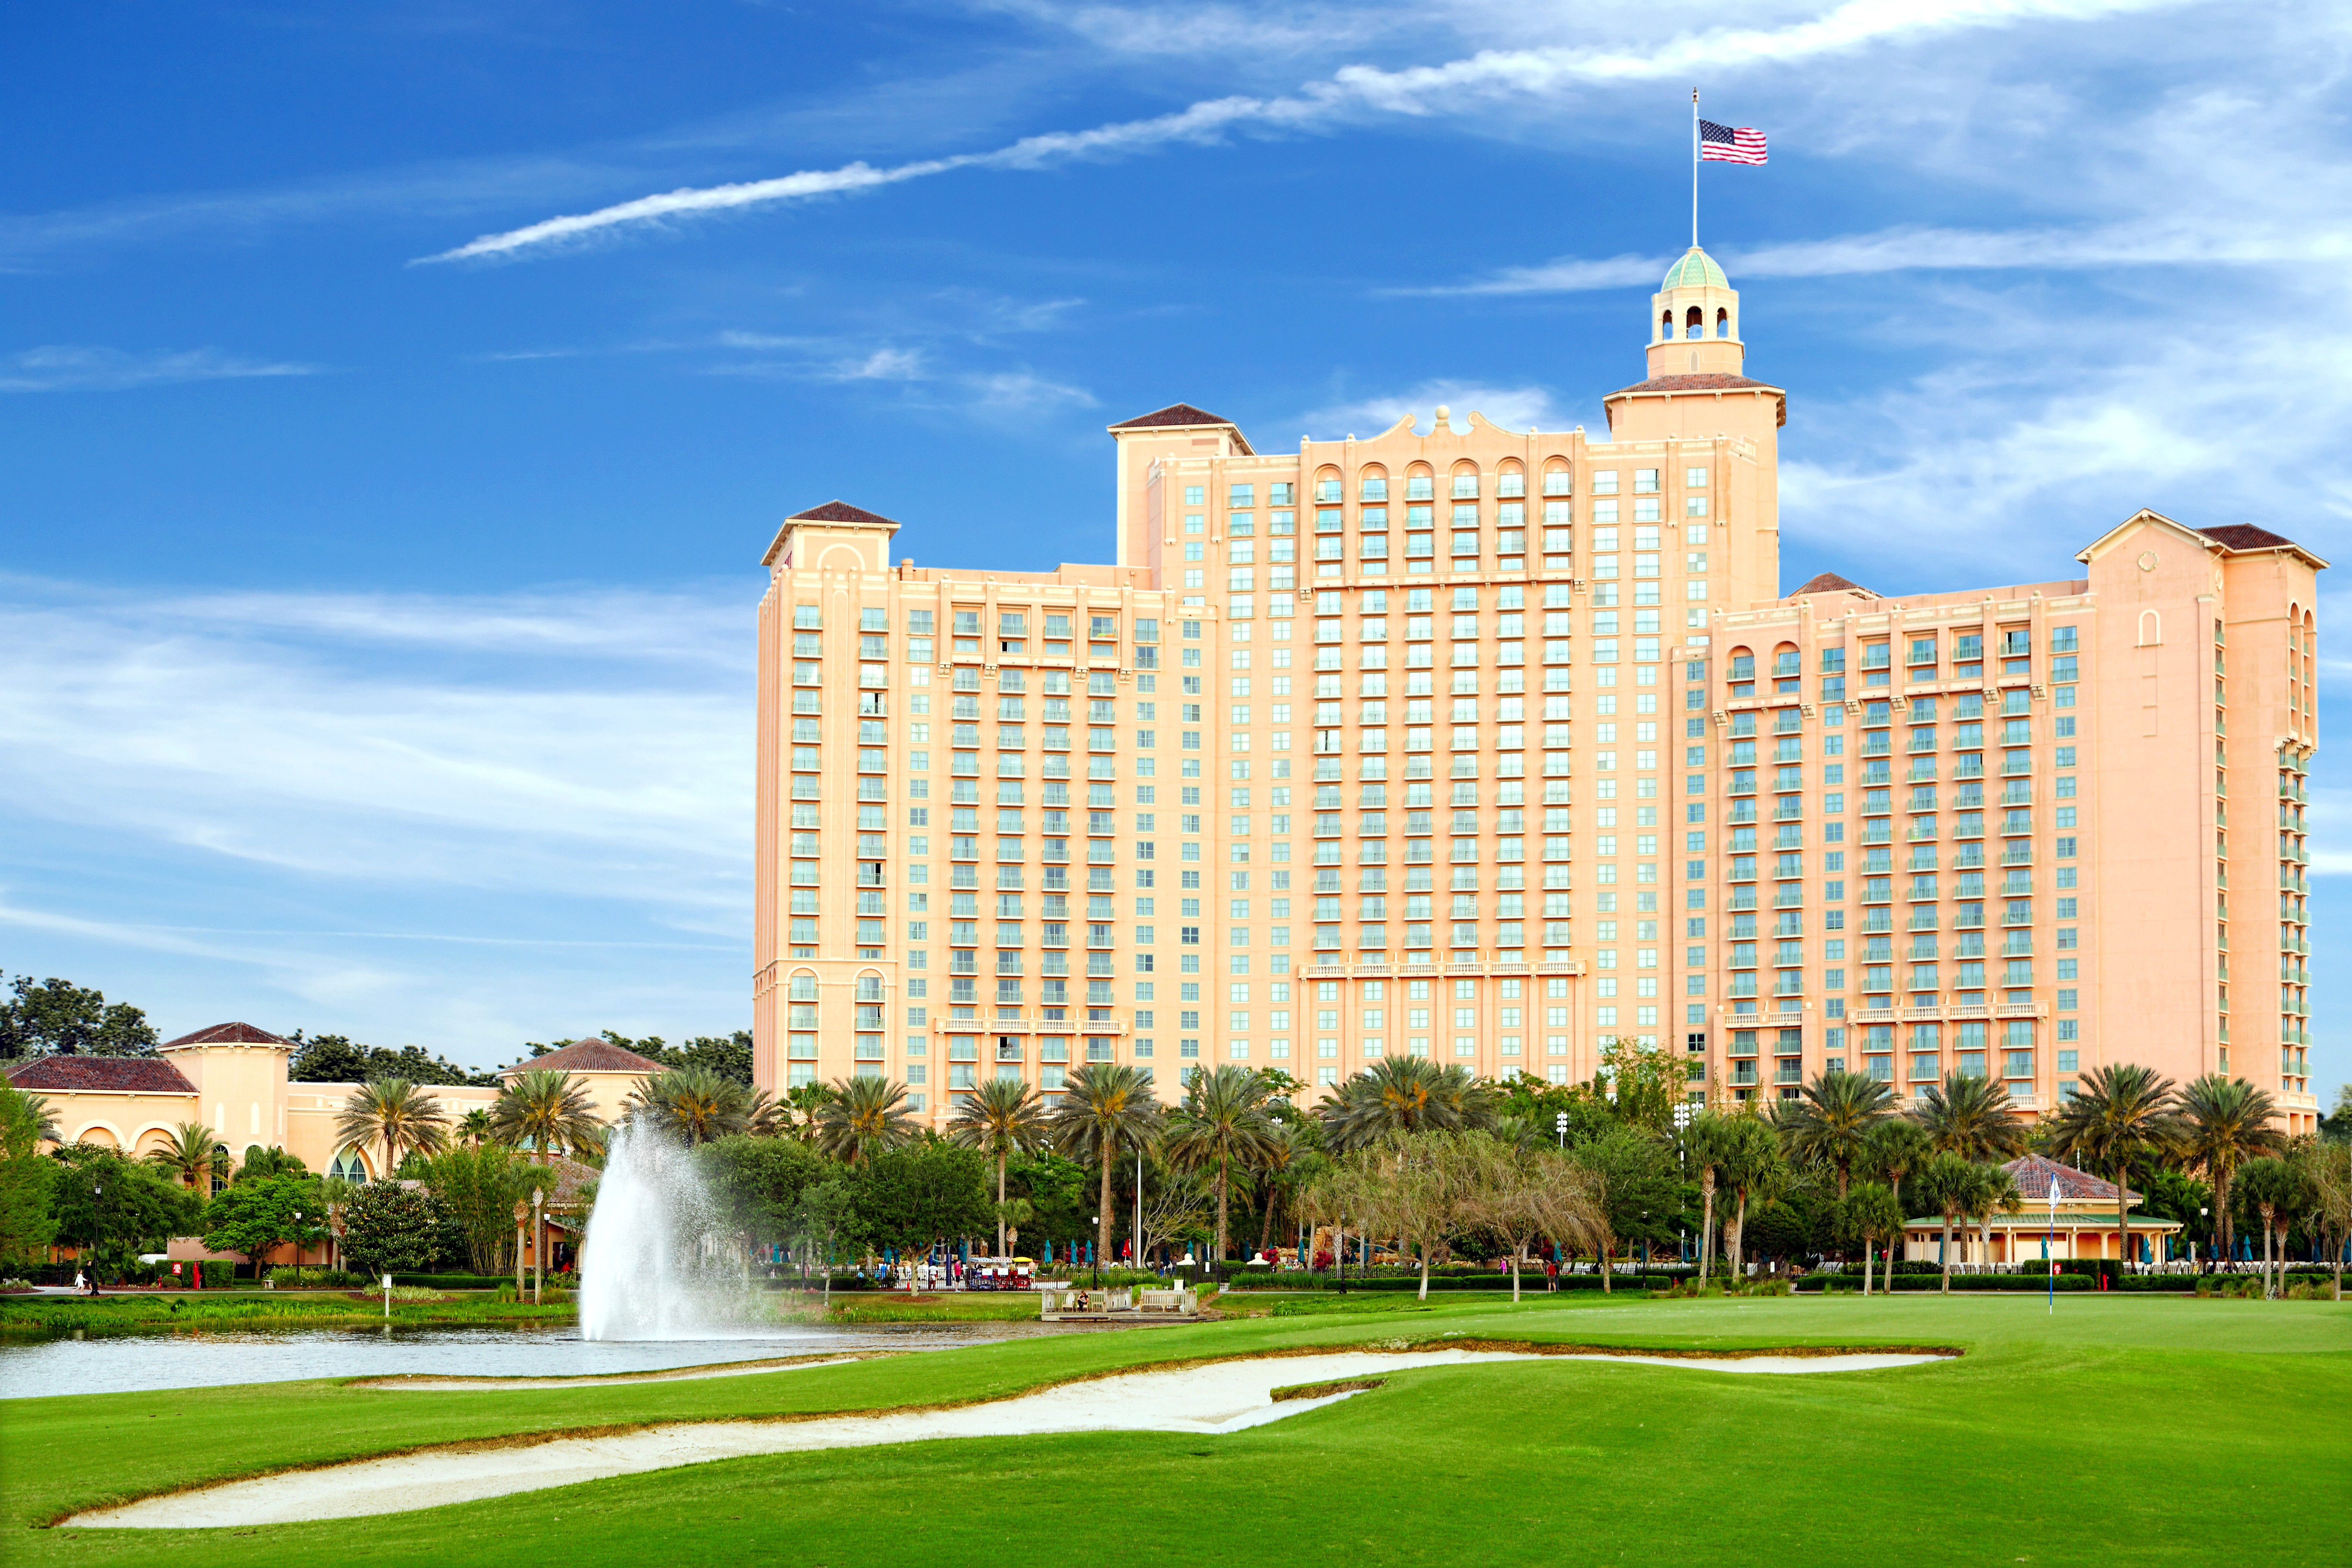 The JW Marriott Orlando hotel near the Convention Center features an 18-hole golf course